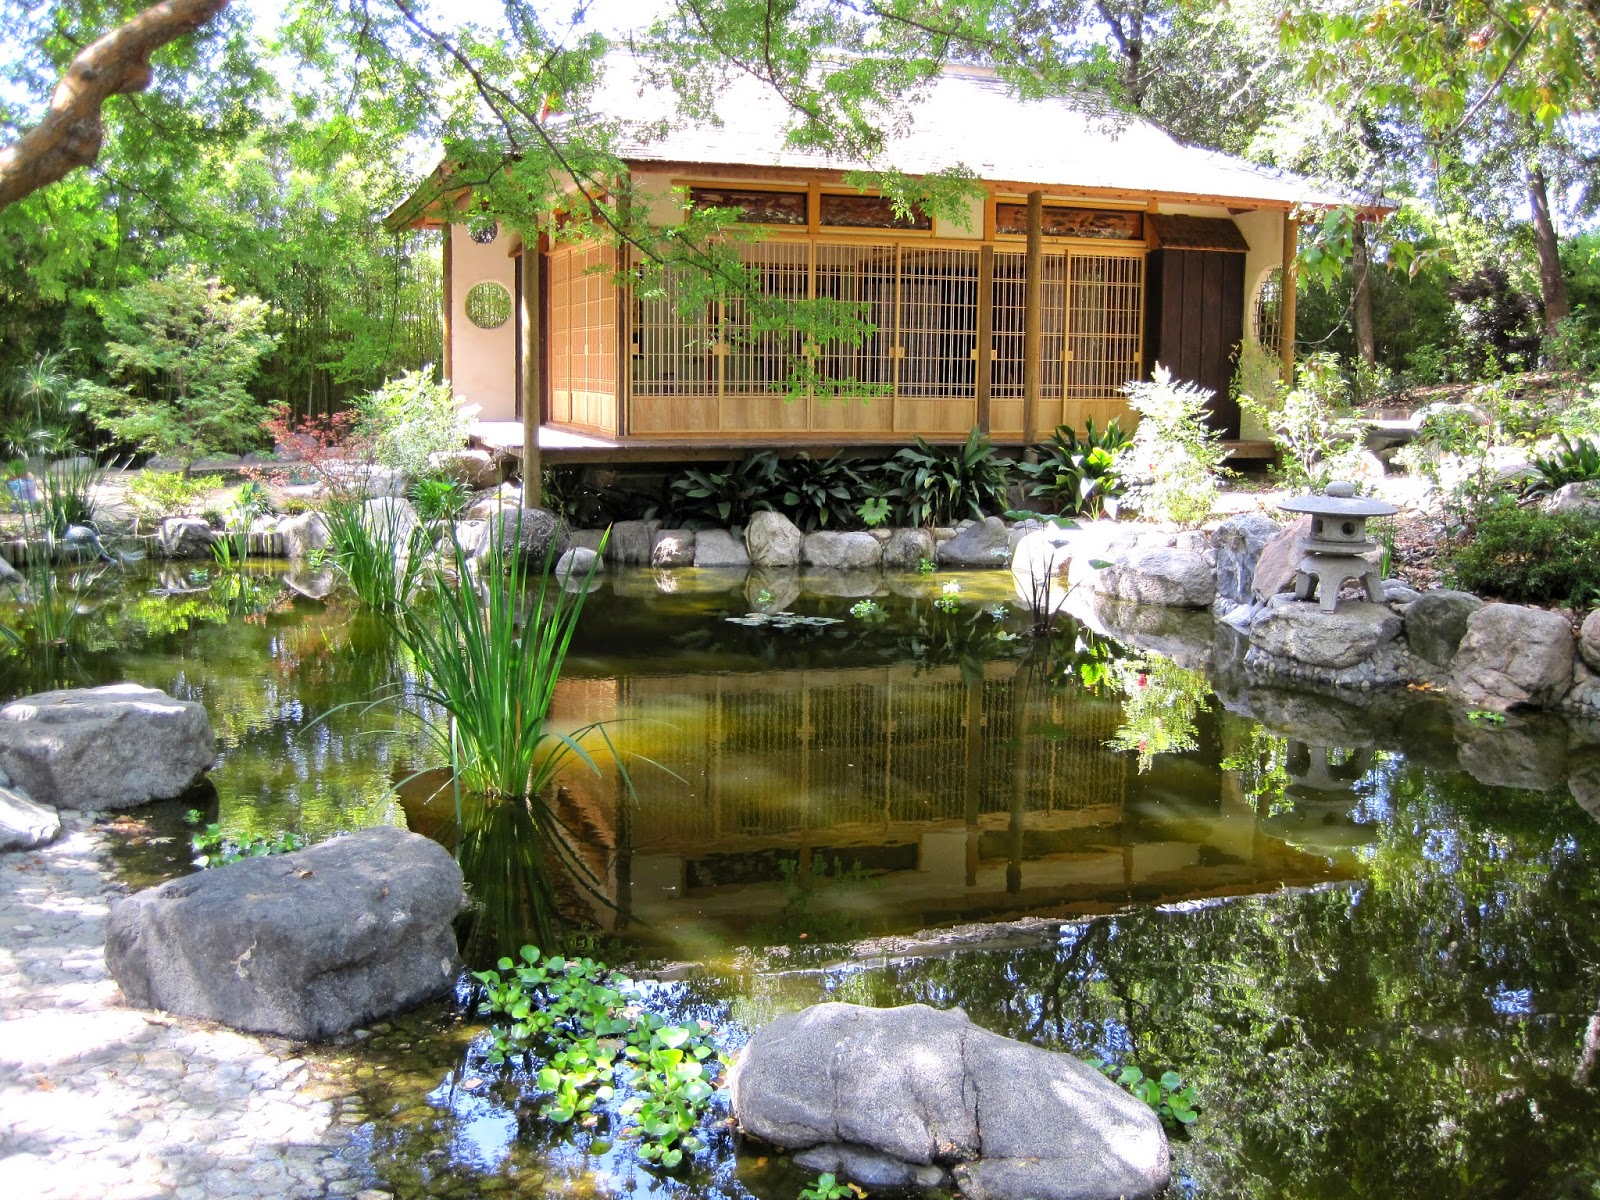 Sherry Schmidt Watercolors: A Japanese Garden